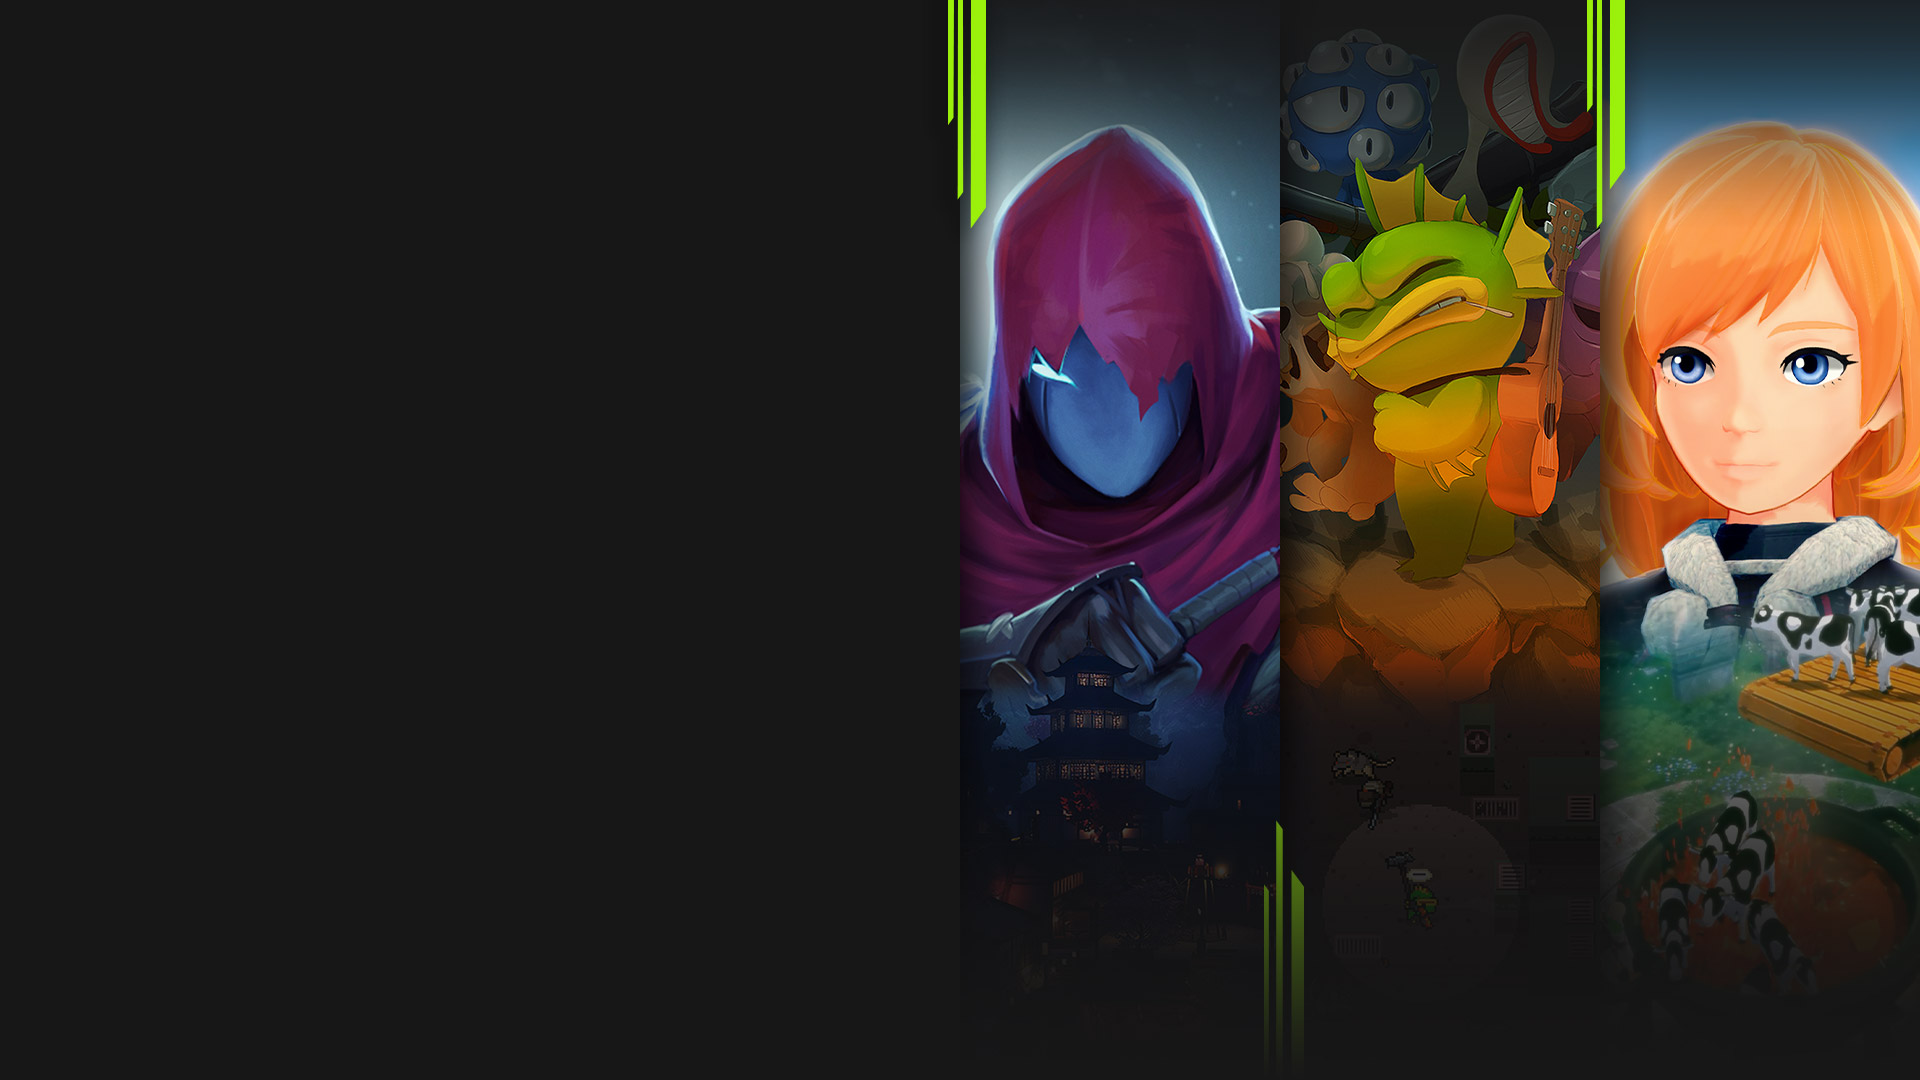 Game art from multiple games available now with Xbox Game Pass including Aragami 2, Nuclear Throne, Craftopia and Psychonauts 2.